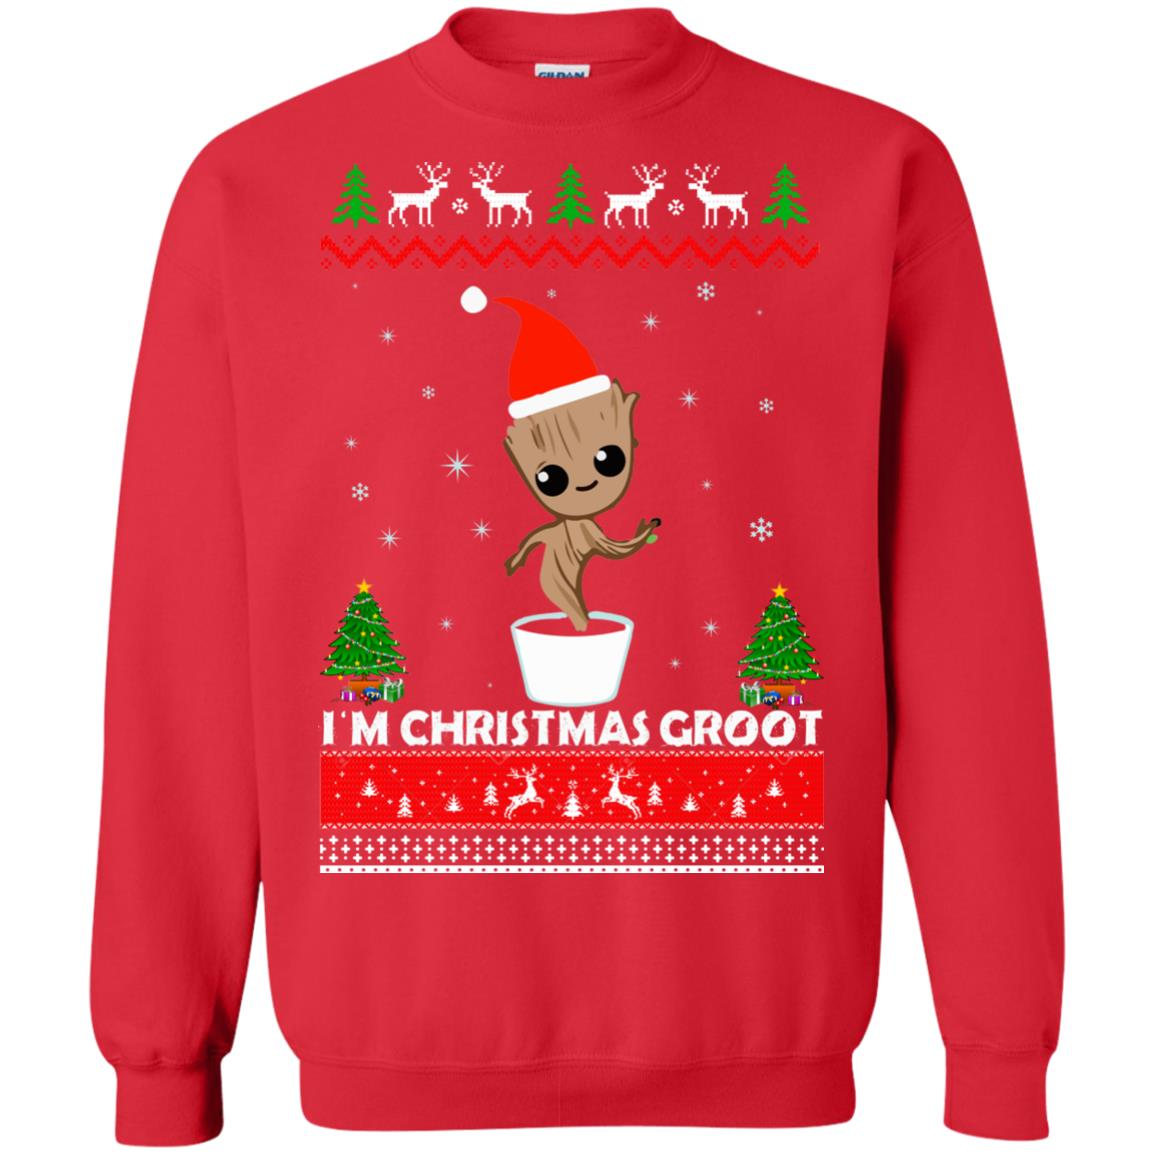 7dce03714 Guardians of the Galaxy: I'm Christmas Groot Ugly Sweater, Shirt - image